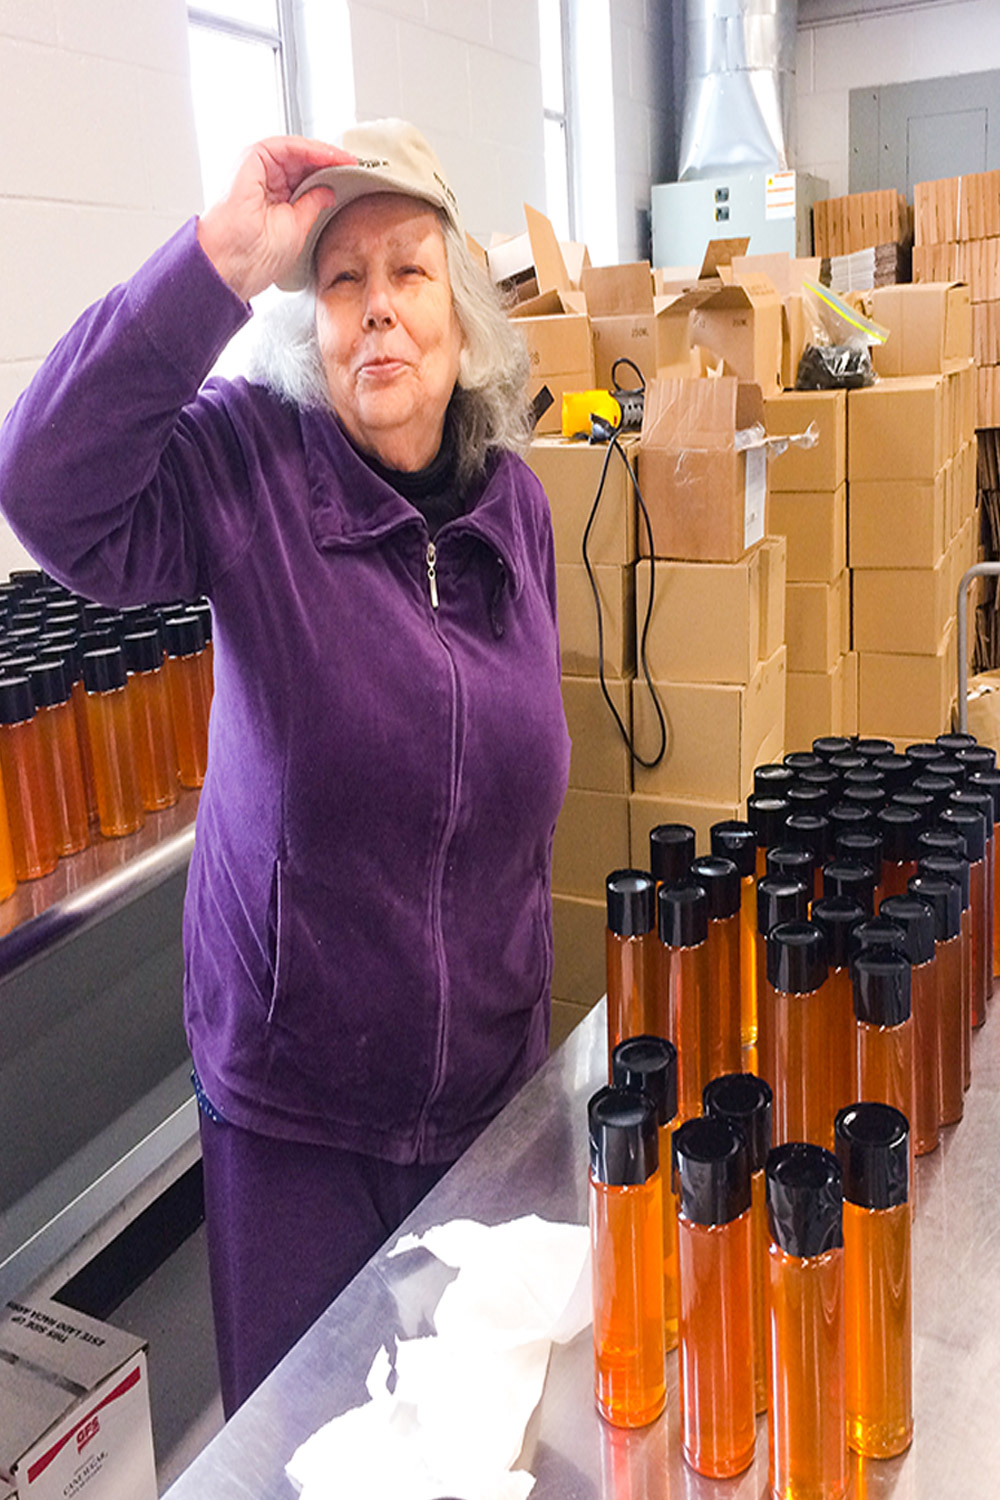 Momma tipping her ballcap standing amidst boxes and jars for shipping